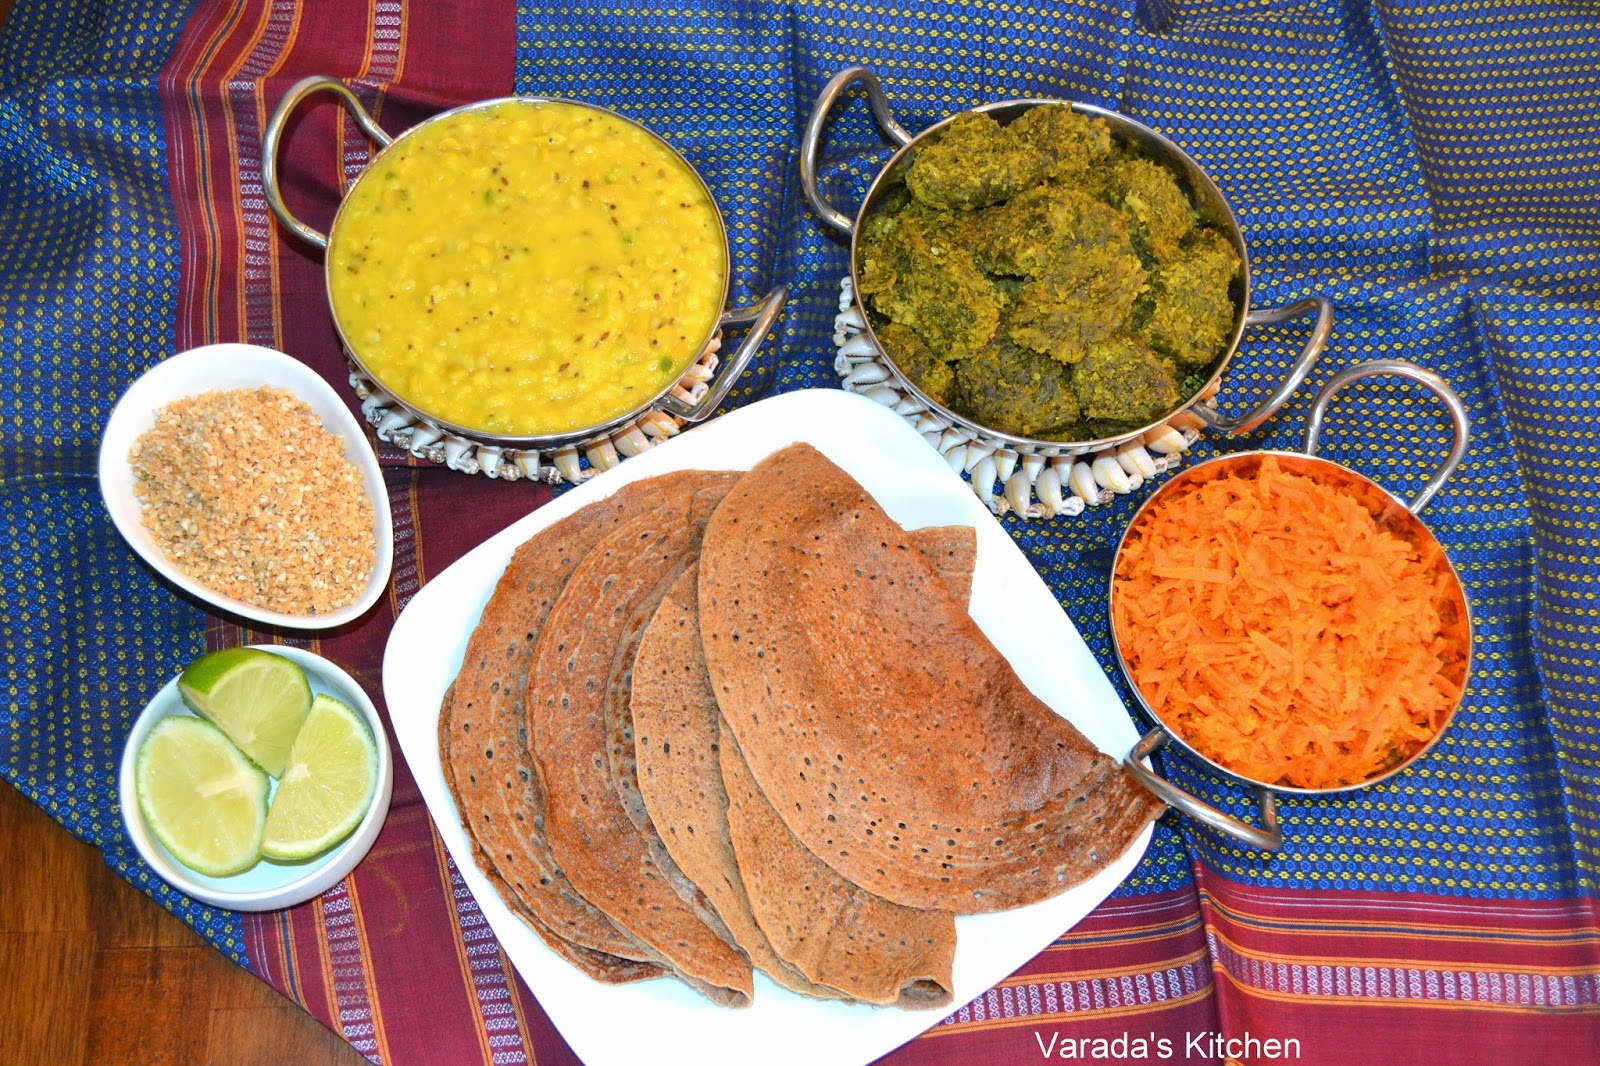 Varadas kitchen traditional maharashtrian meal a maharashtrian meal generally starts with dalwaransada waran with rice the next course is poli or chapati the last course is yogurt or buttermilk with forumfinder Gallery